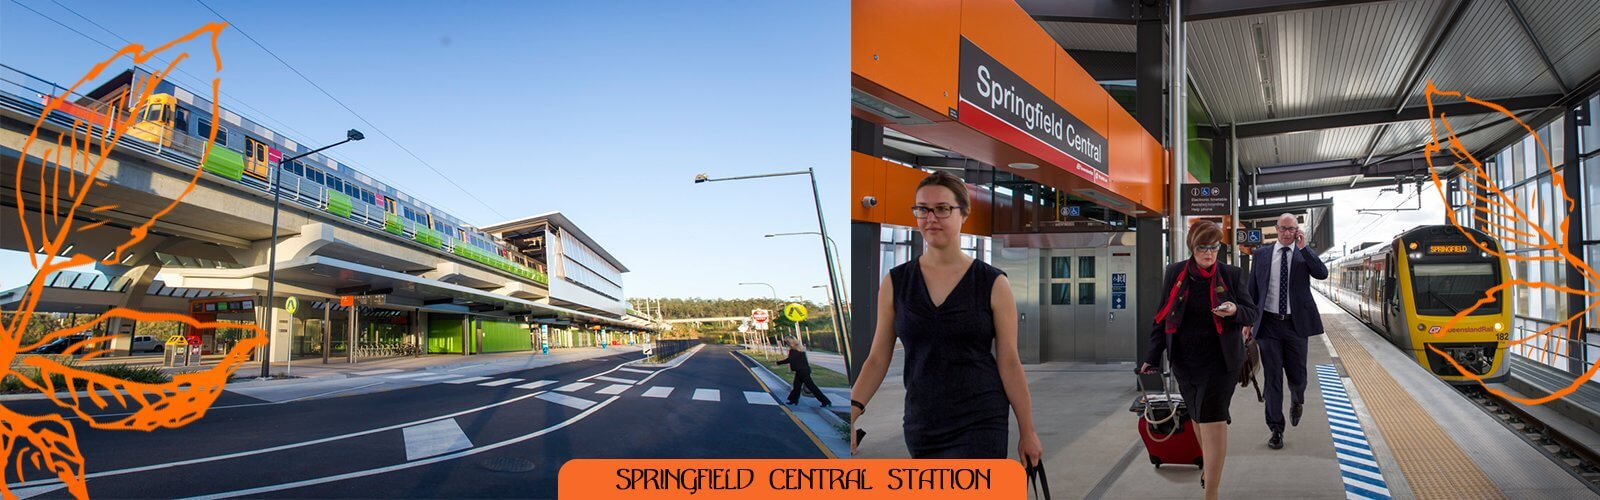 Springfield Central Railway Station is the terminus station of the Springfield line in Queensland, Australia. It serves Springfield Central and other nearby suburbs in the City of Ipswich.